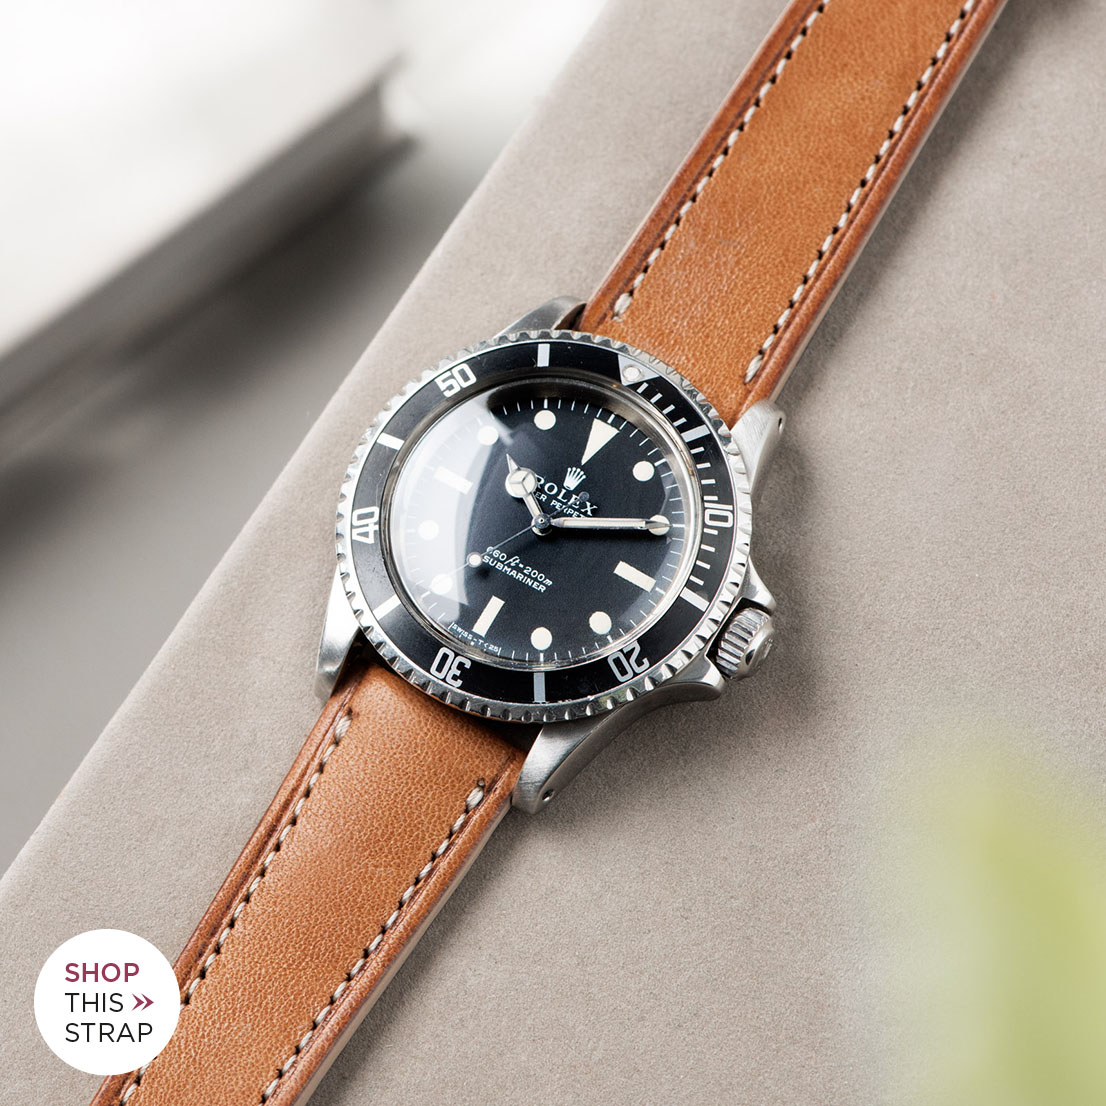 Bulang and Sons_Strap Guide_Rolex 5513 Submariner_CORSARO BROWN RETRO LEATHER WATCH STRAP